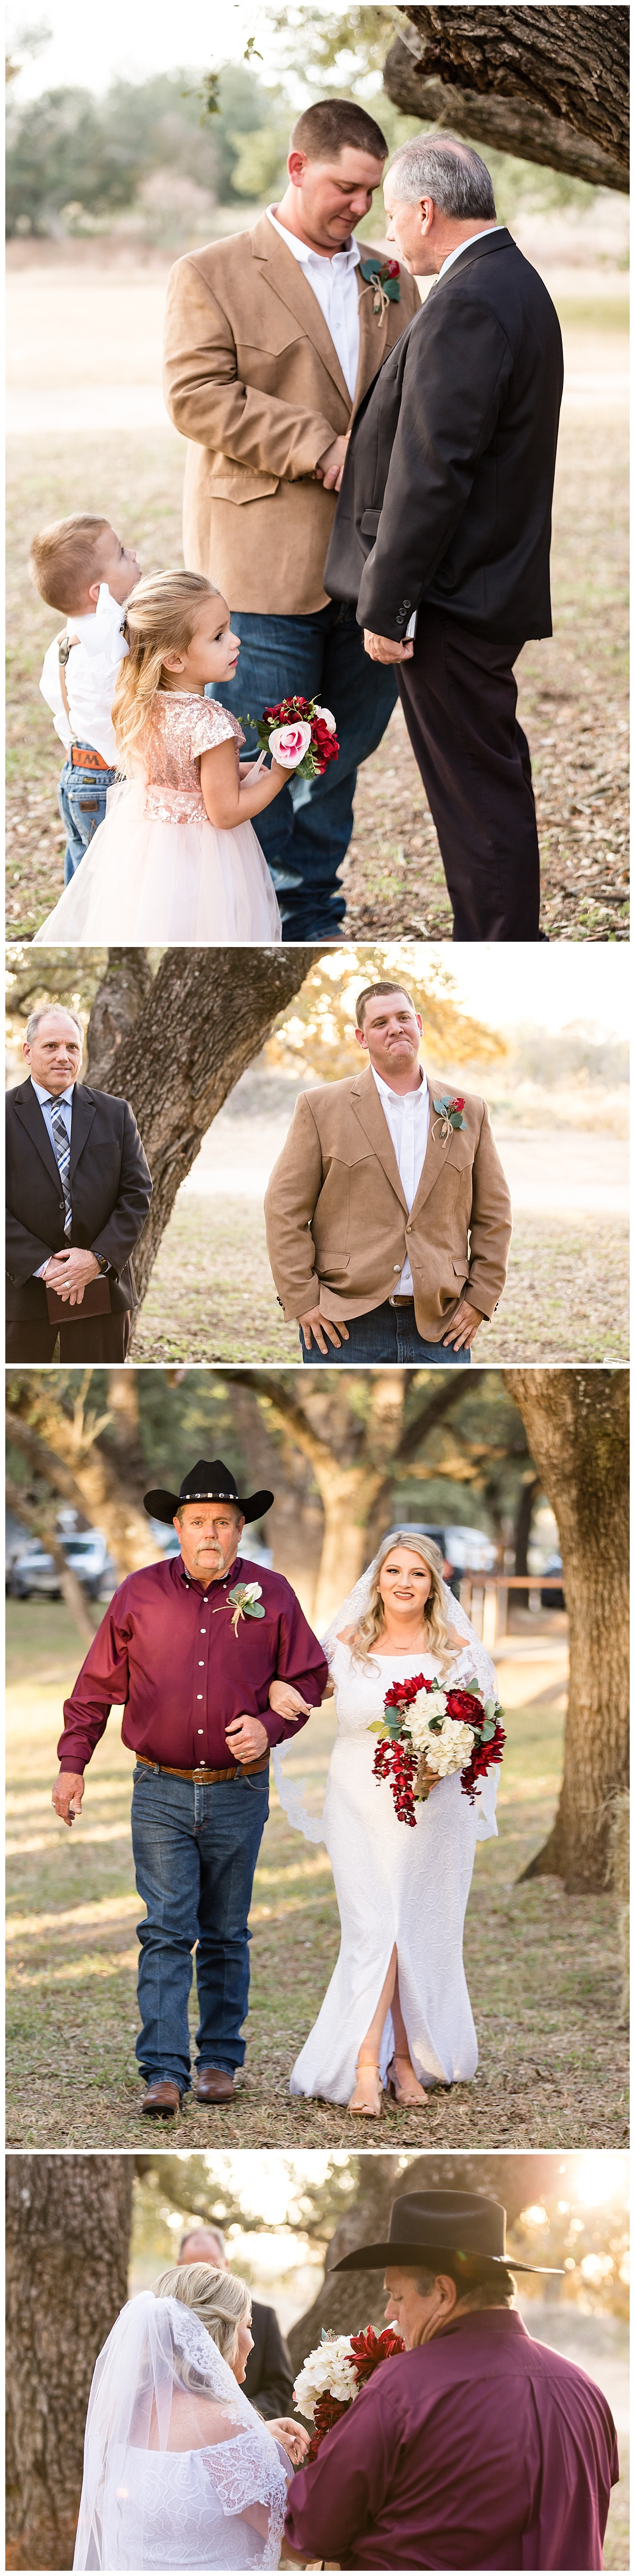 Wedding-Photographer-LaVernia-Texas-Ceremony-Under-the-Trees-Bride-Groom-Fall-McDonald-Carly-Barton-Photography_0011.jpg